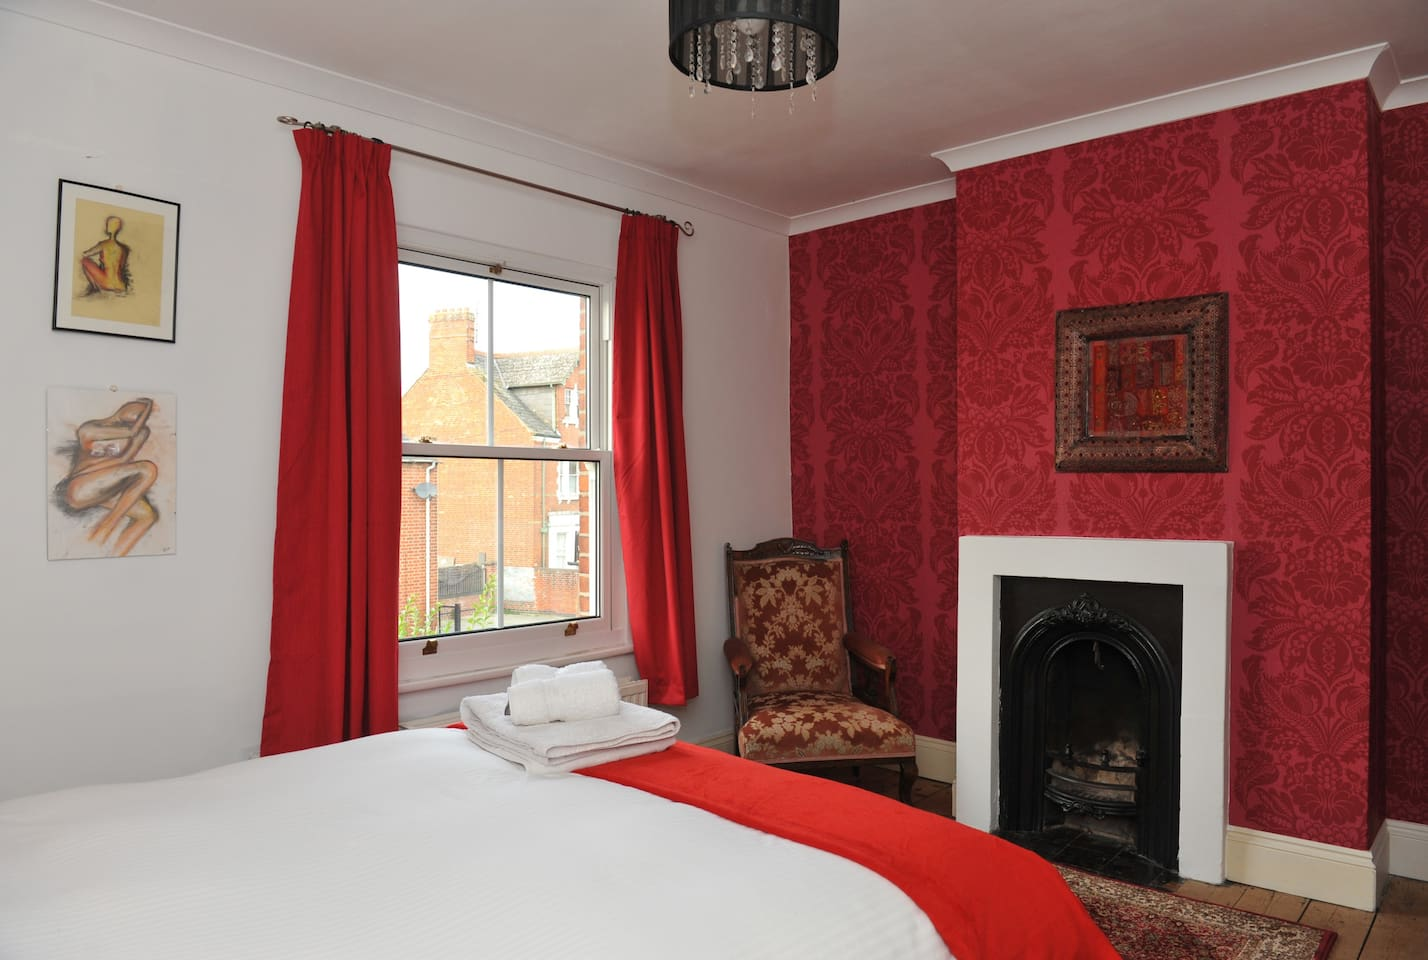 Your room with king size bed- The Red Bedroom